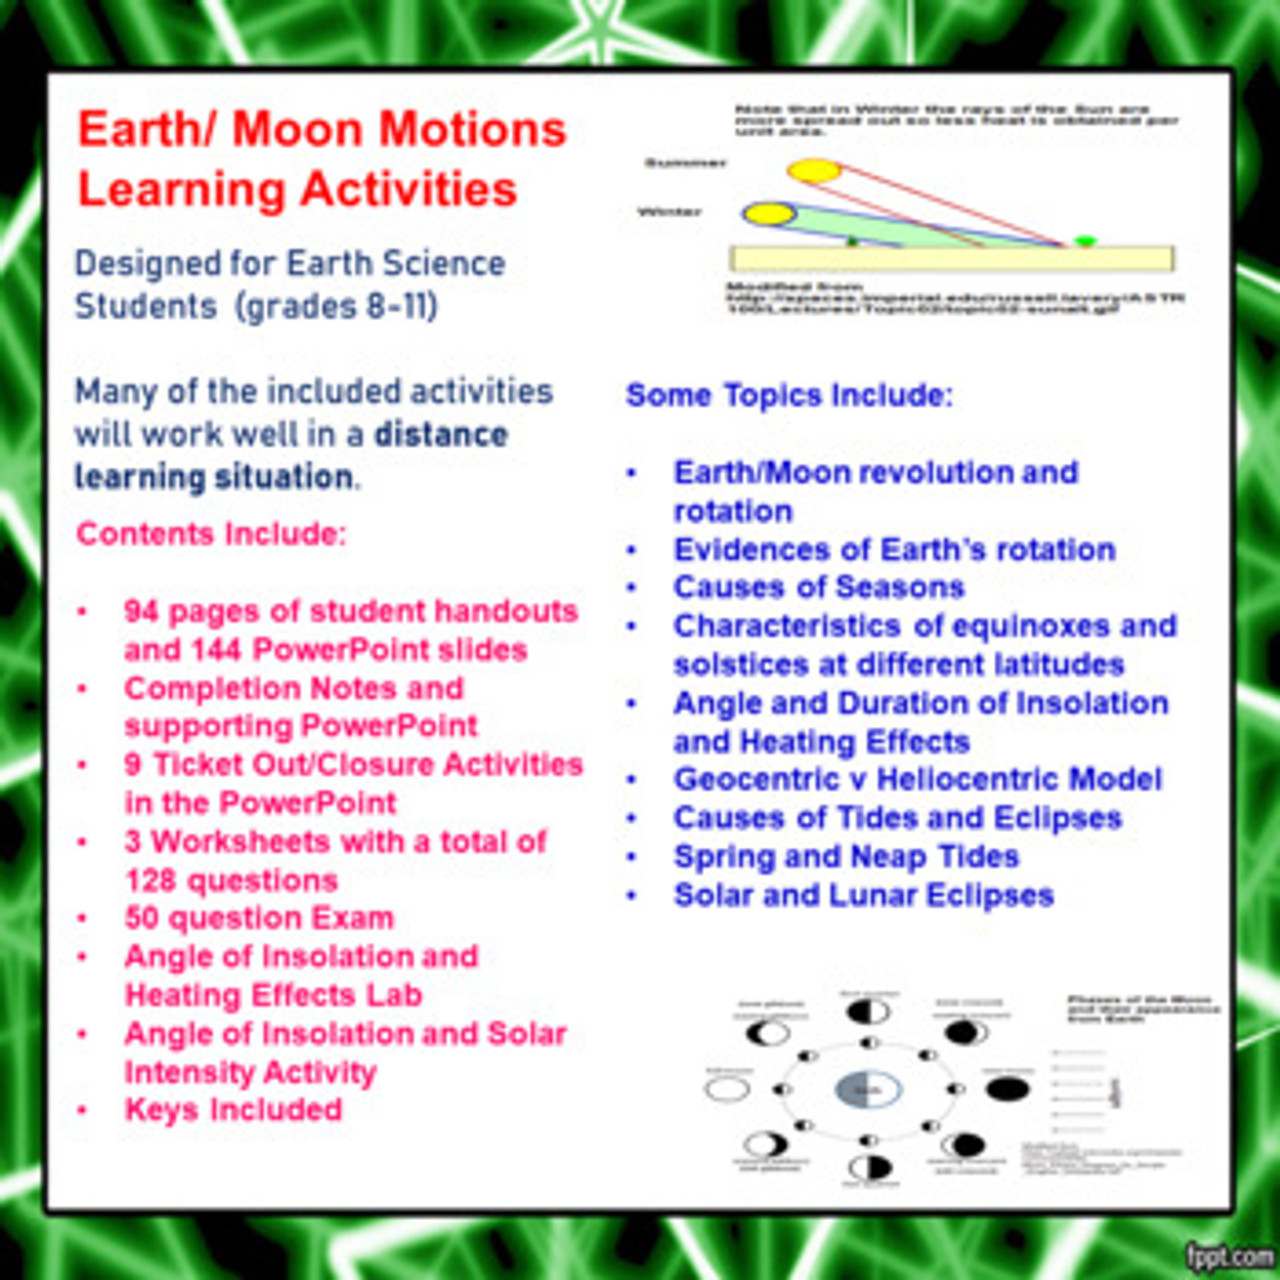 Earth/Moon Motions Learning Activities [ 1280 x 1280 Pixel ]